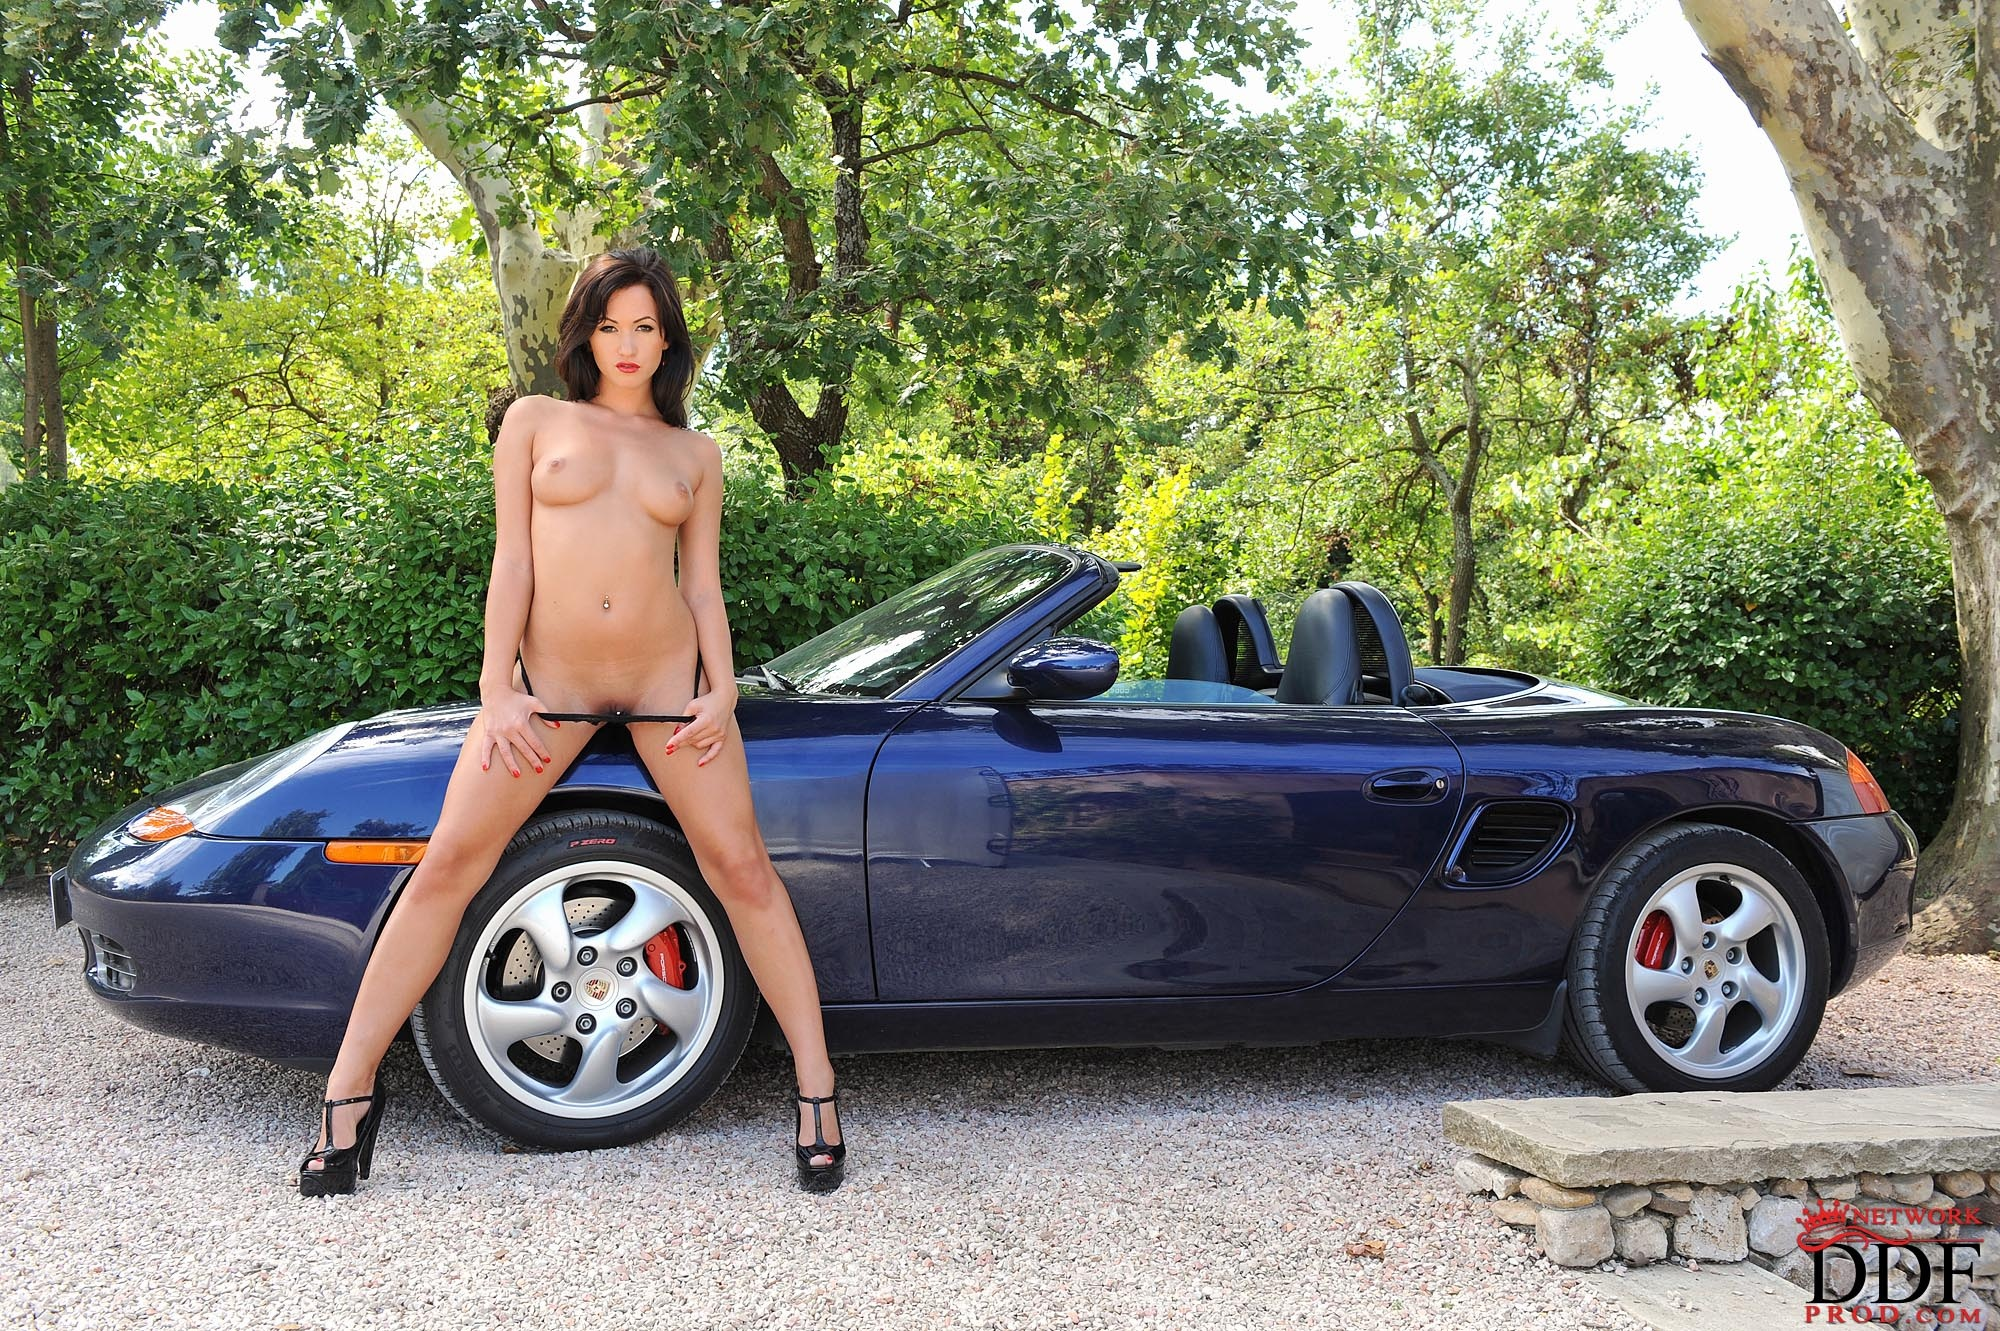 Fully naked girls on cars, cosmetics facial